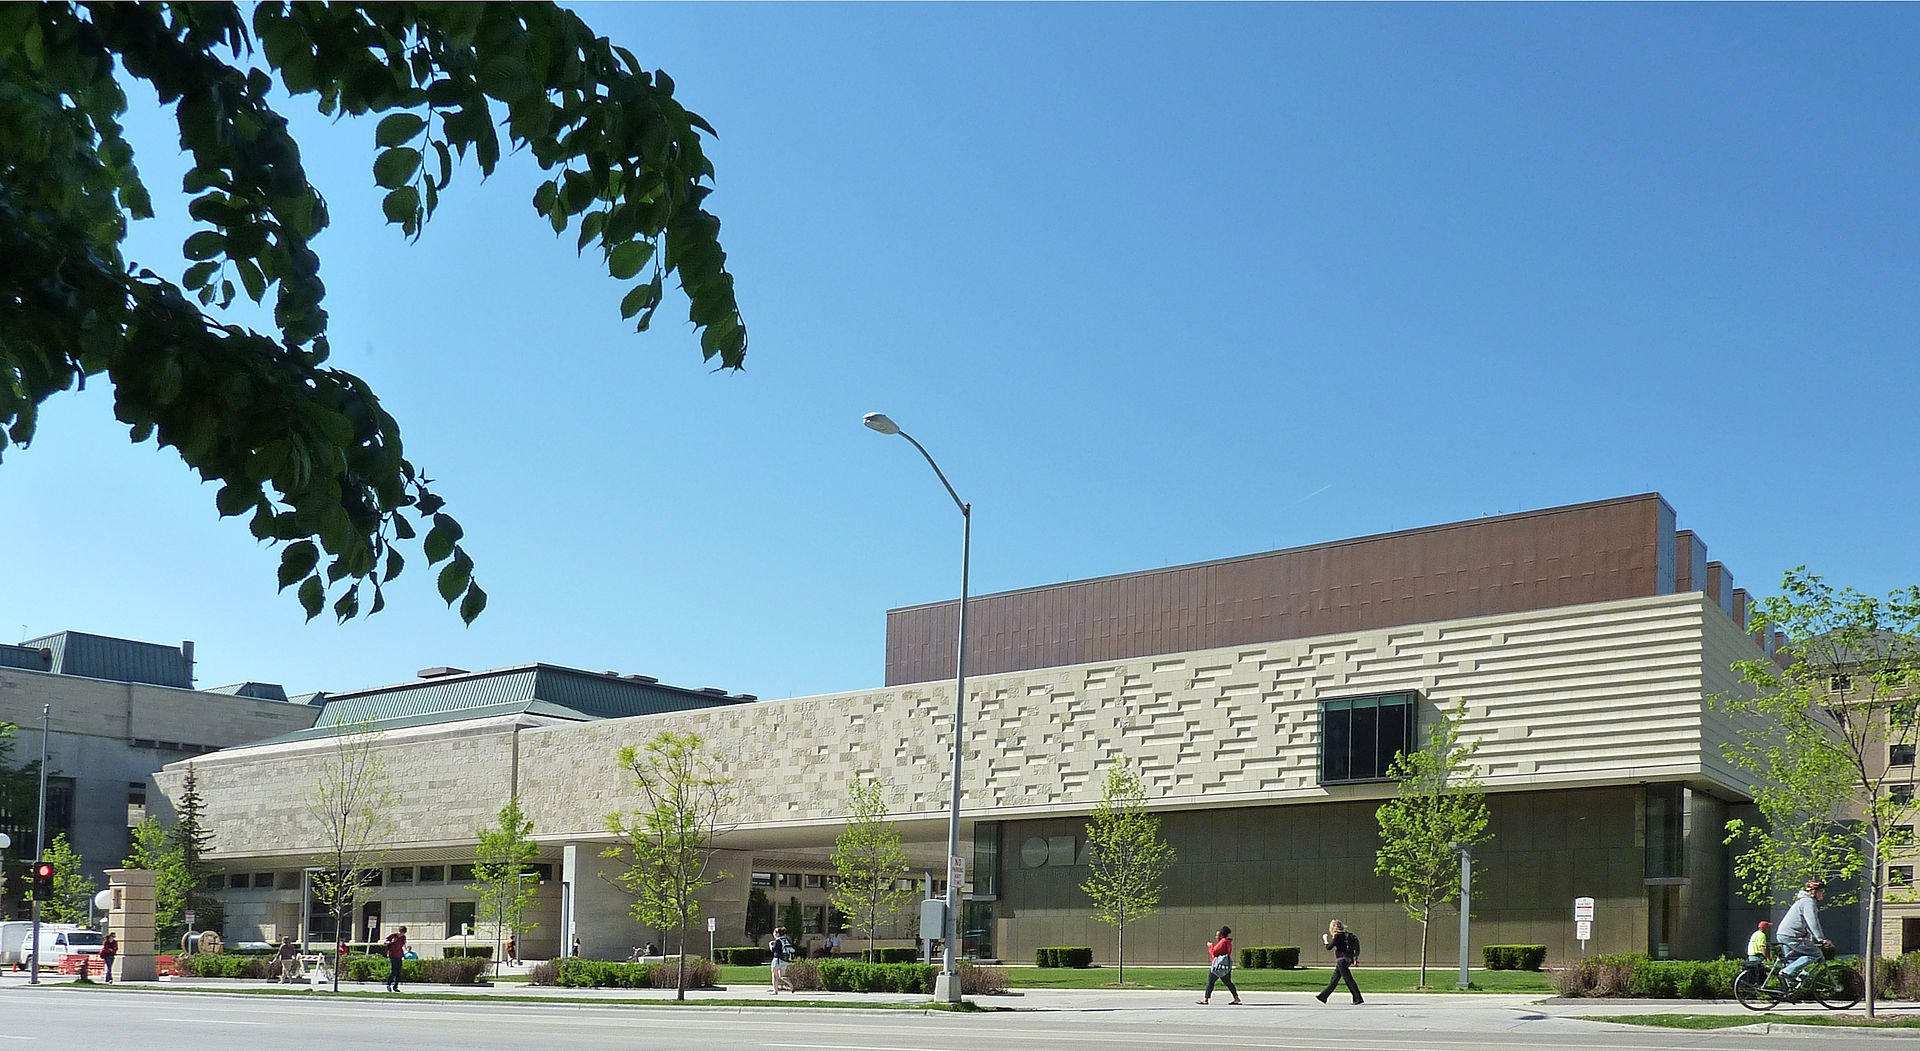 The Chazen Museum of Art opened in 1970 and was originally called the Elvehjem Art Center until 2005 when the museum was expanded.